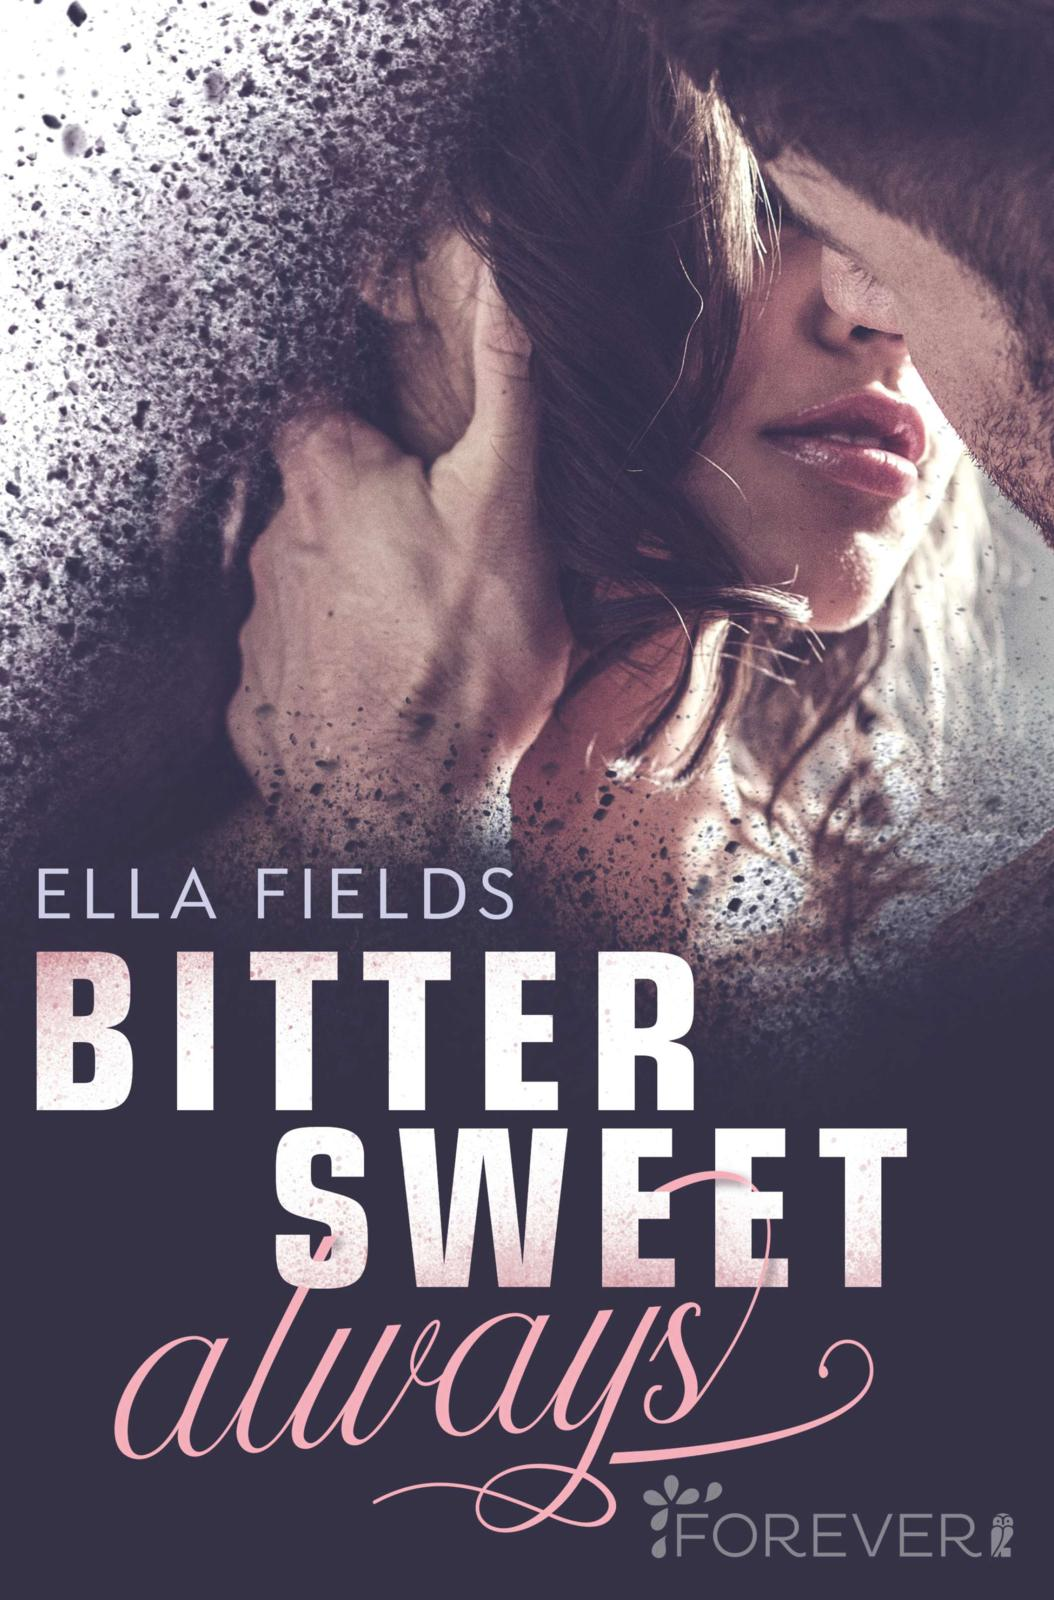 [Ausgelesen] Ella Fields: Bittersweet Always